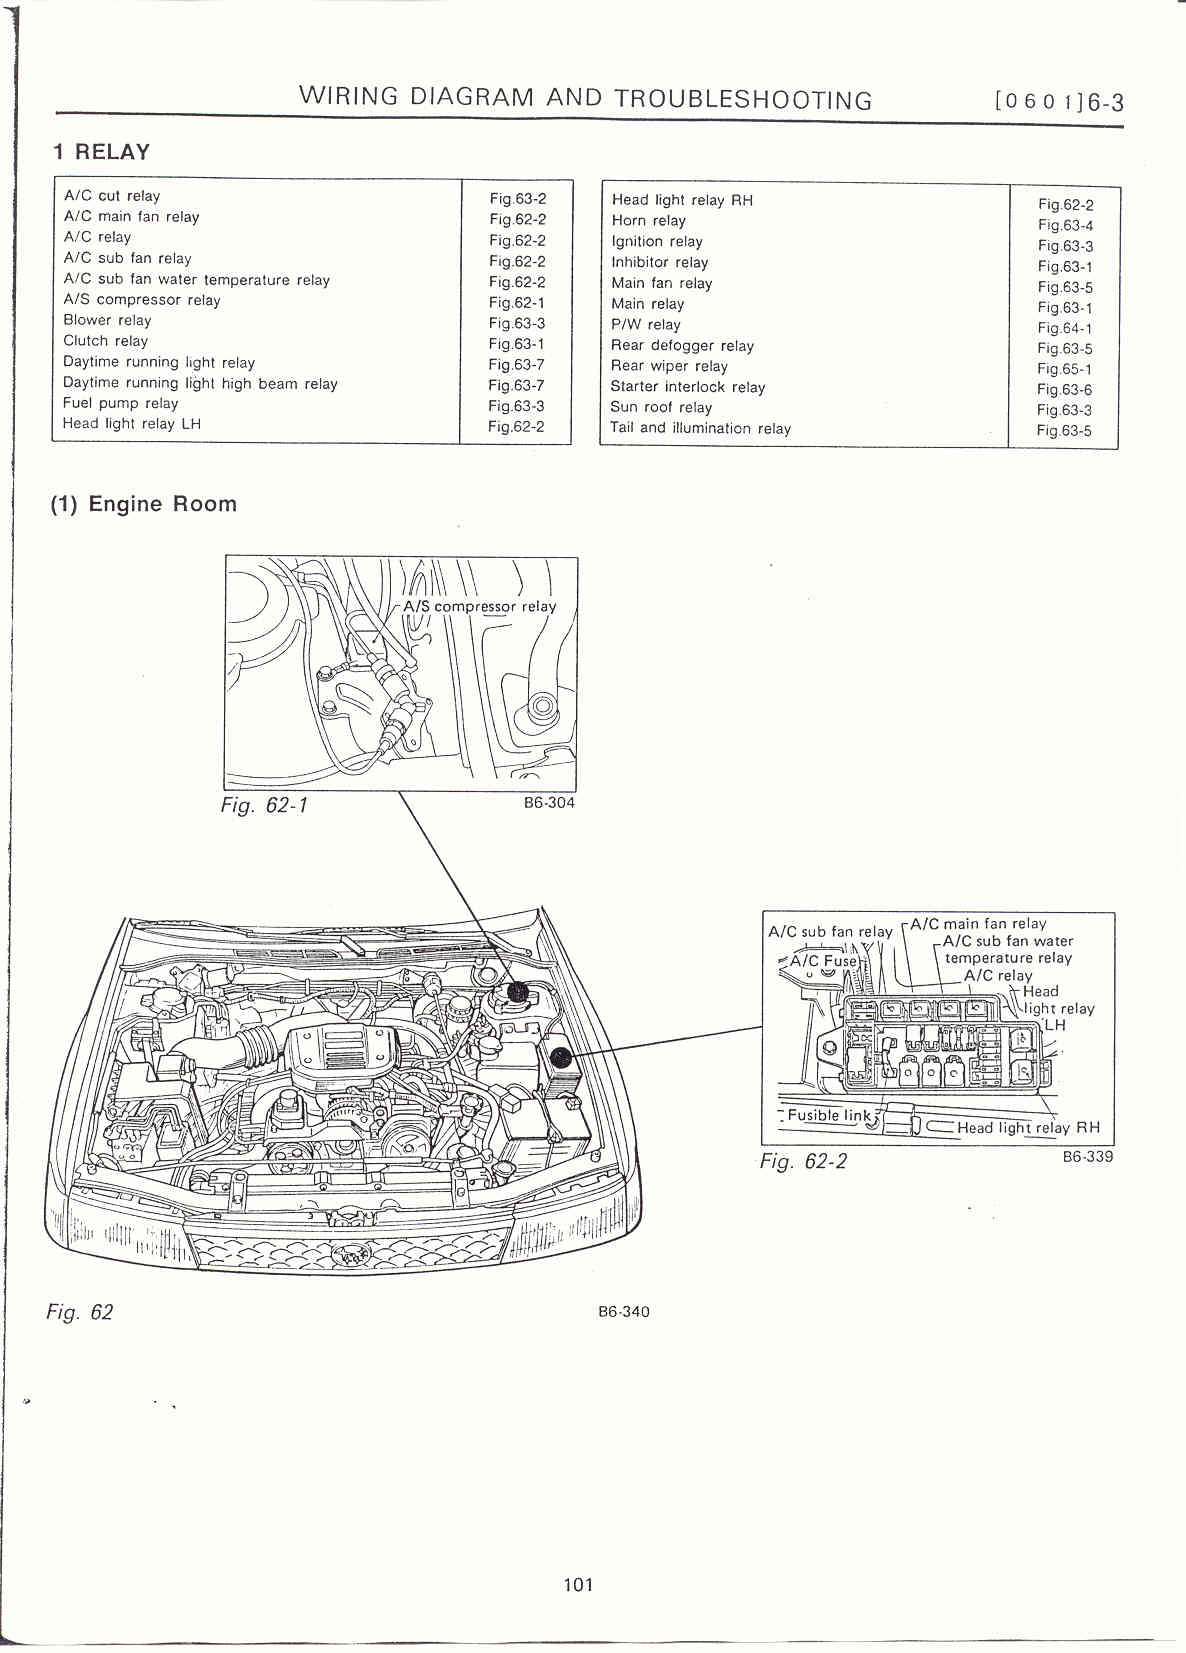 Subaru Wrx Engine Diagram